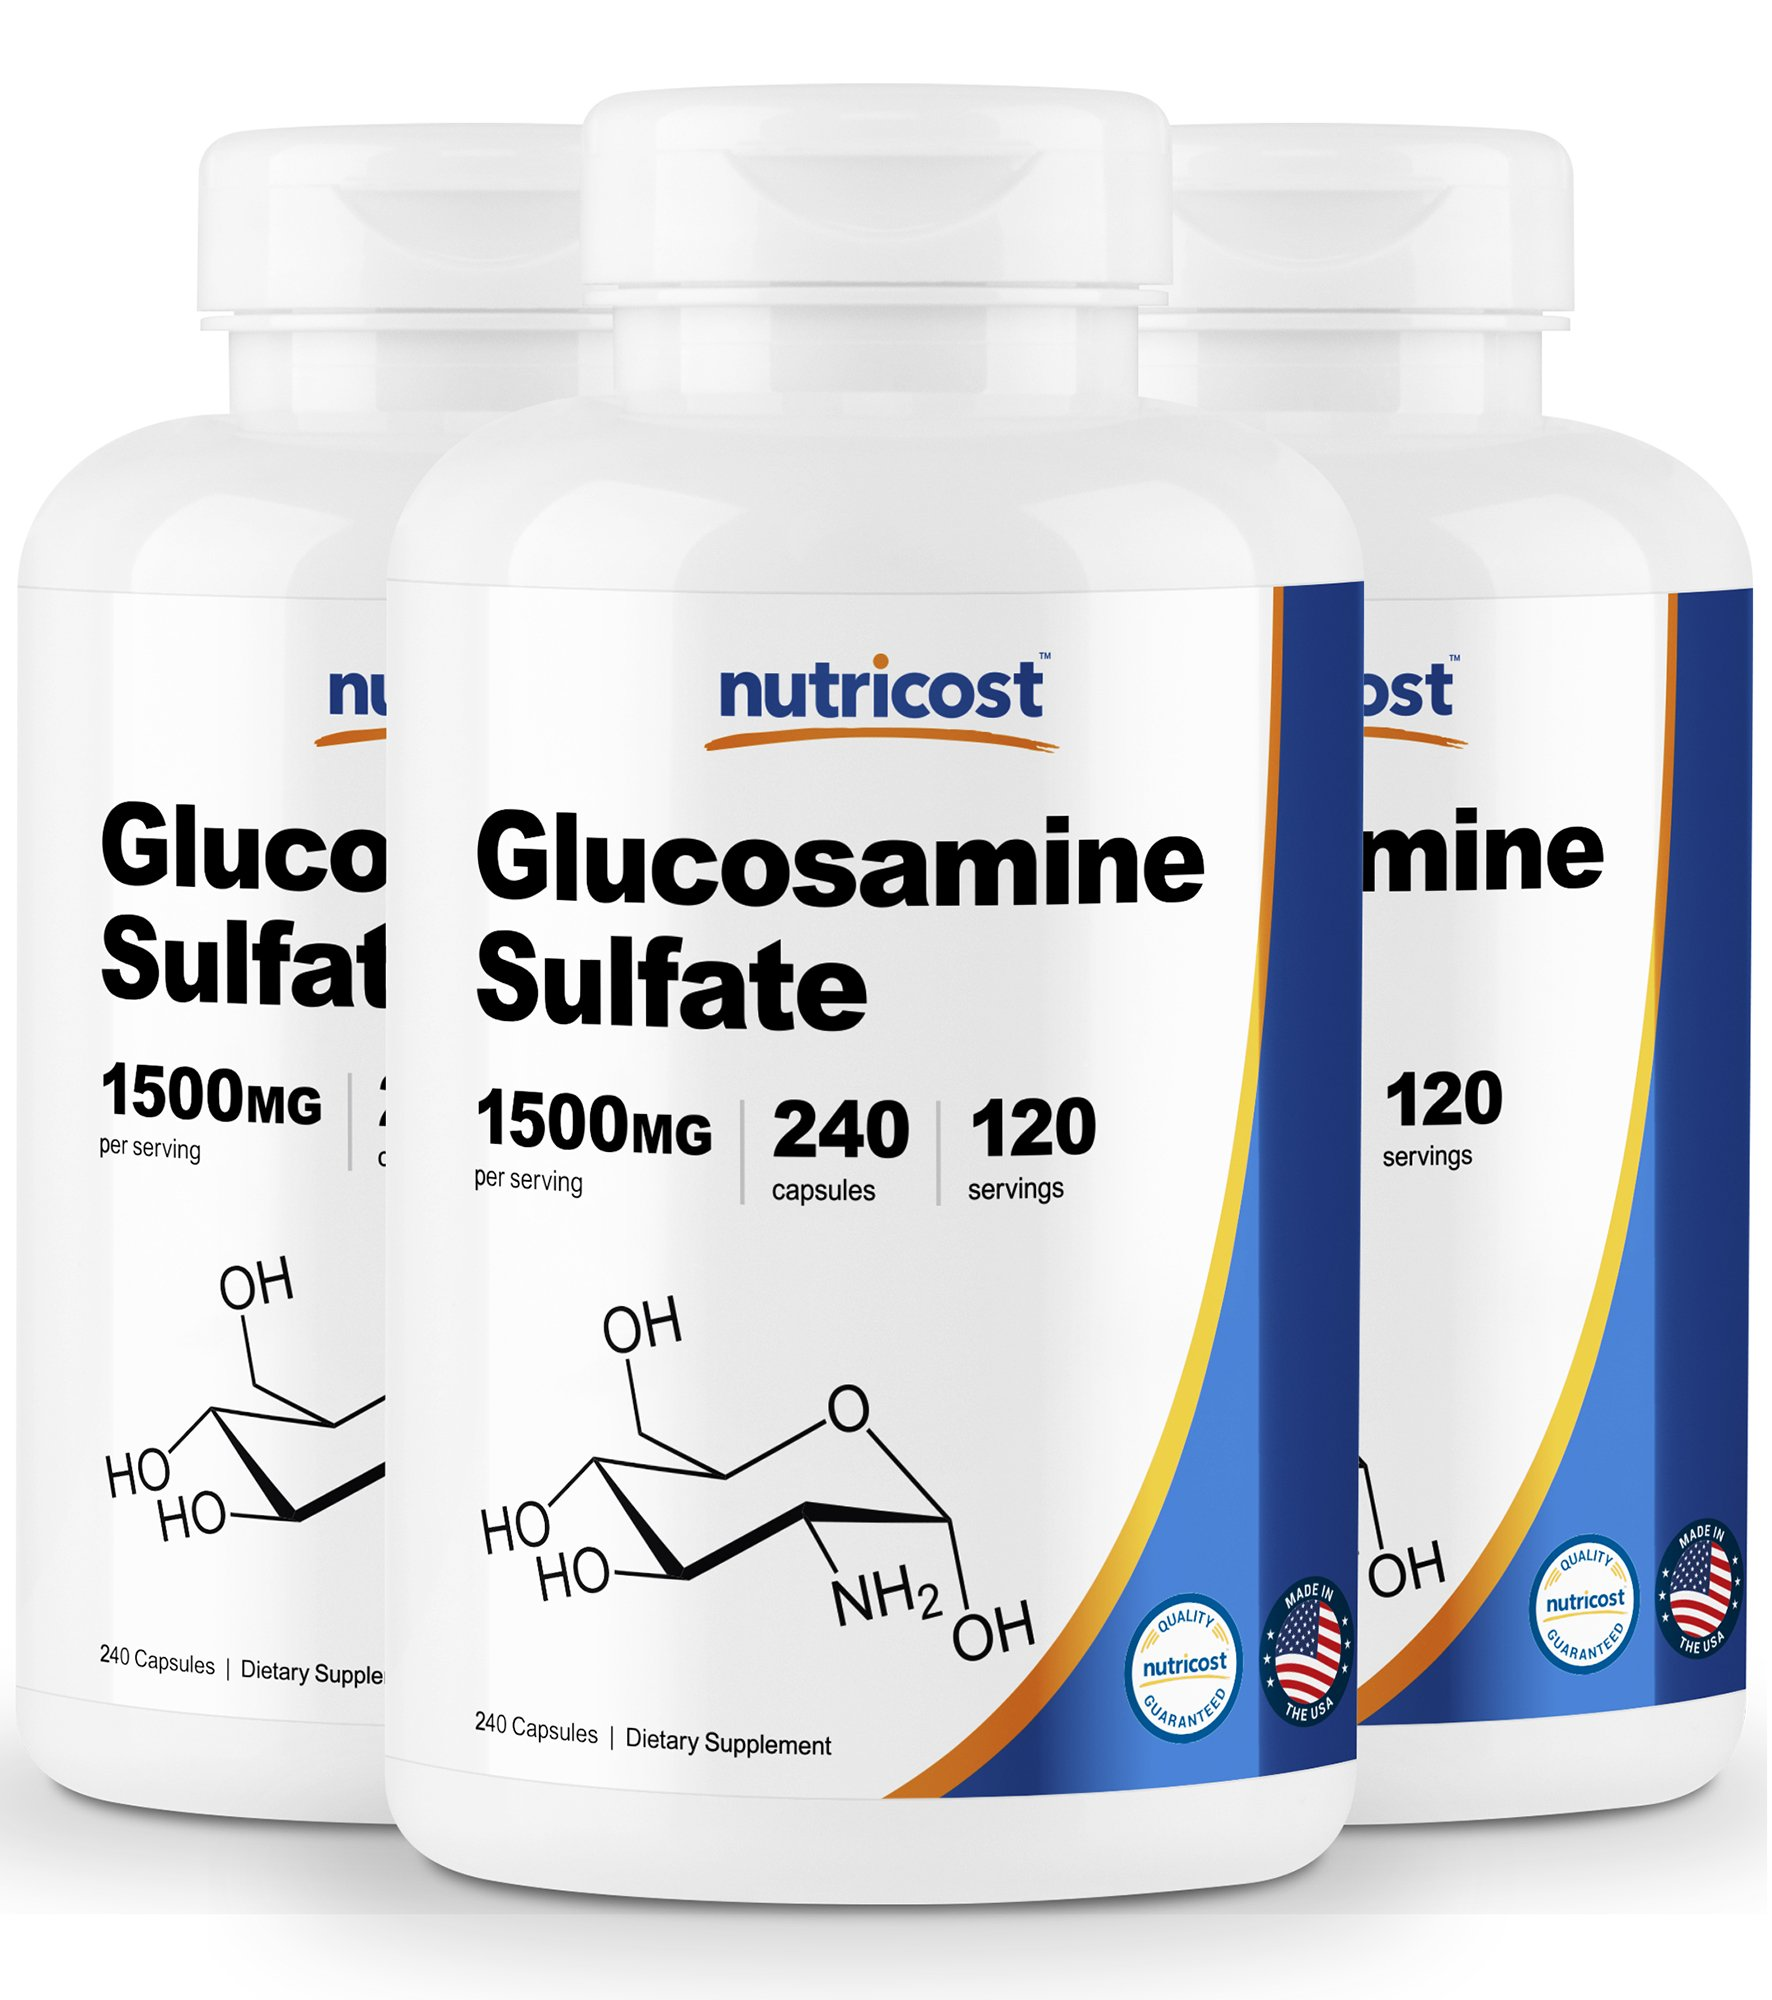 Nutricost Glucosamine Sulfate 750mg, 240 Capsules (3 Bottles) (1500mg per Serving) by Nutricost